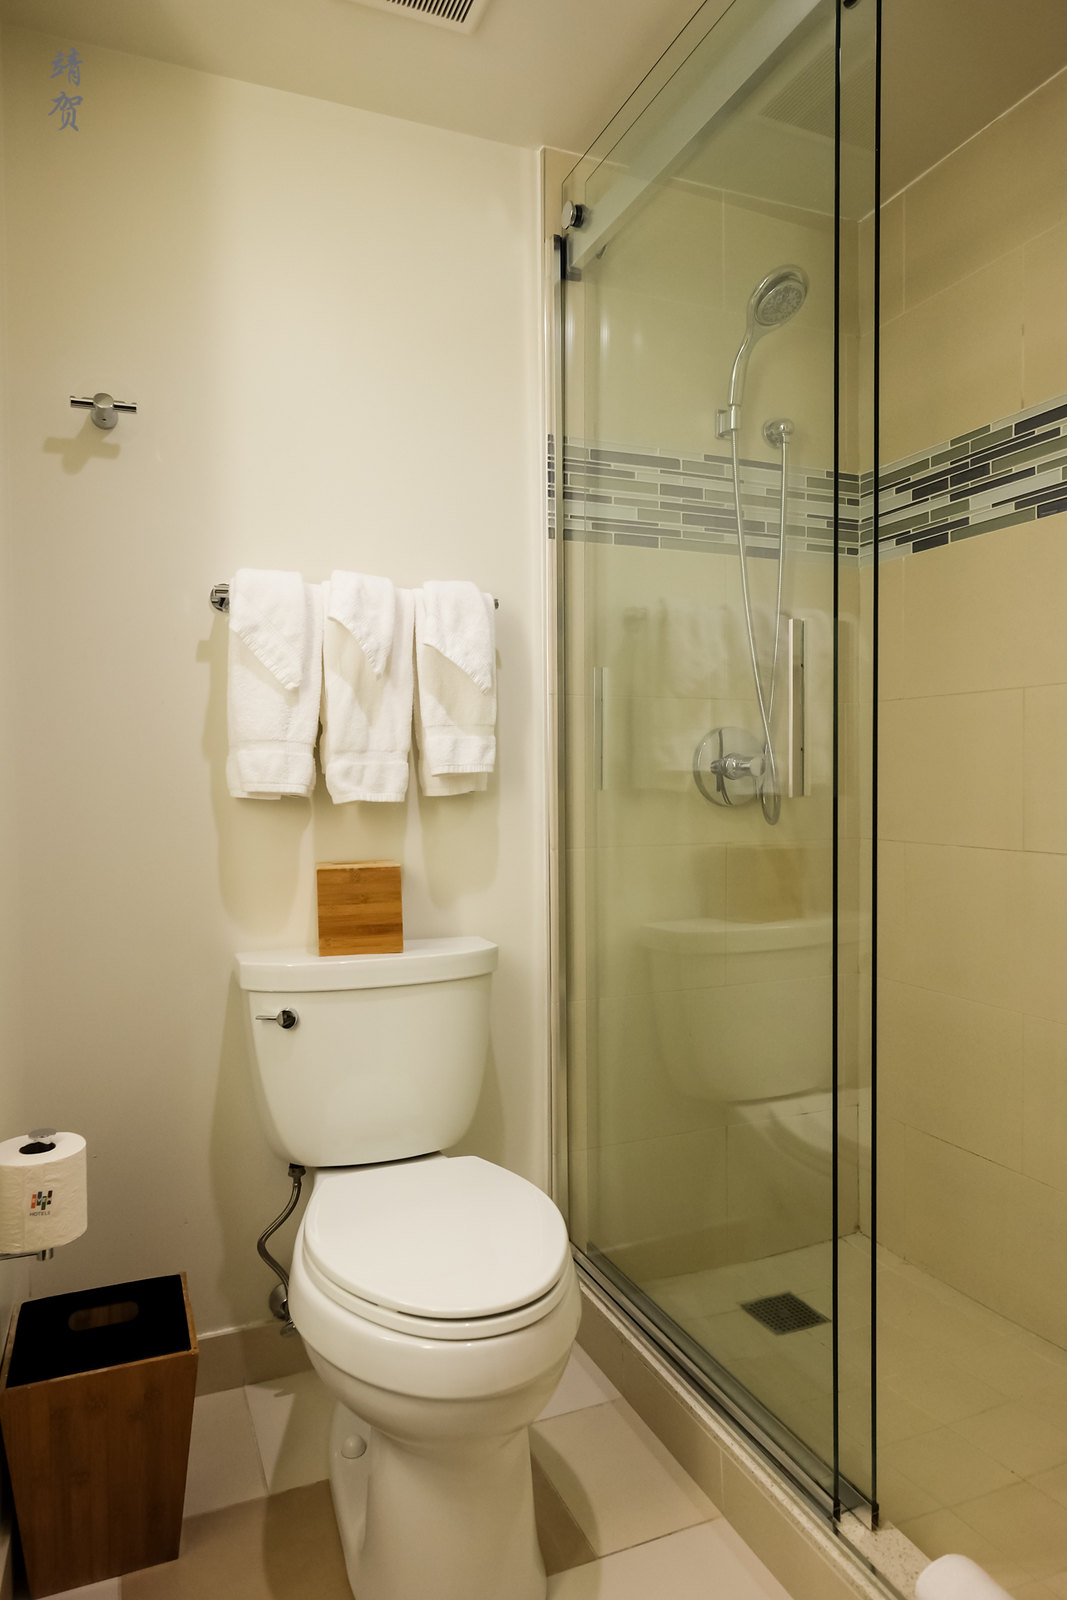 Toilet and shower cubicle